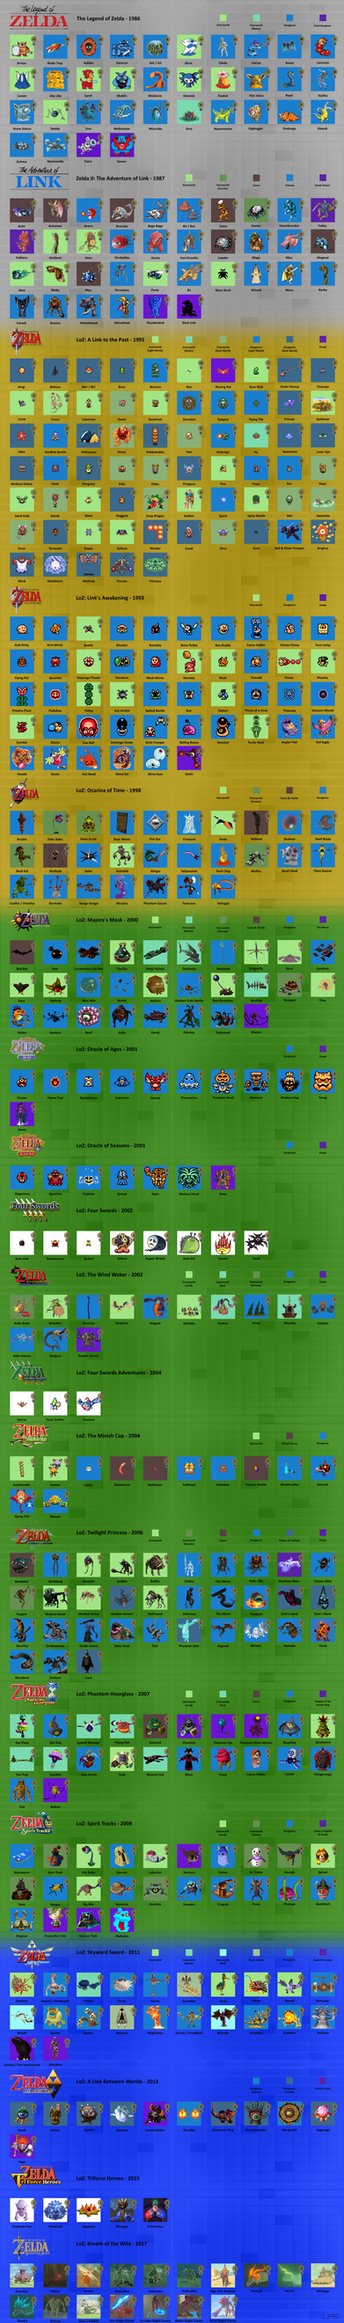 History of Zelda Enemies (WARNING: Spoilers) by LiquidFrogStudios